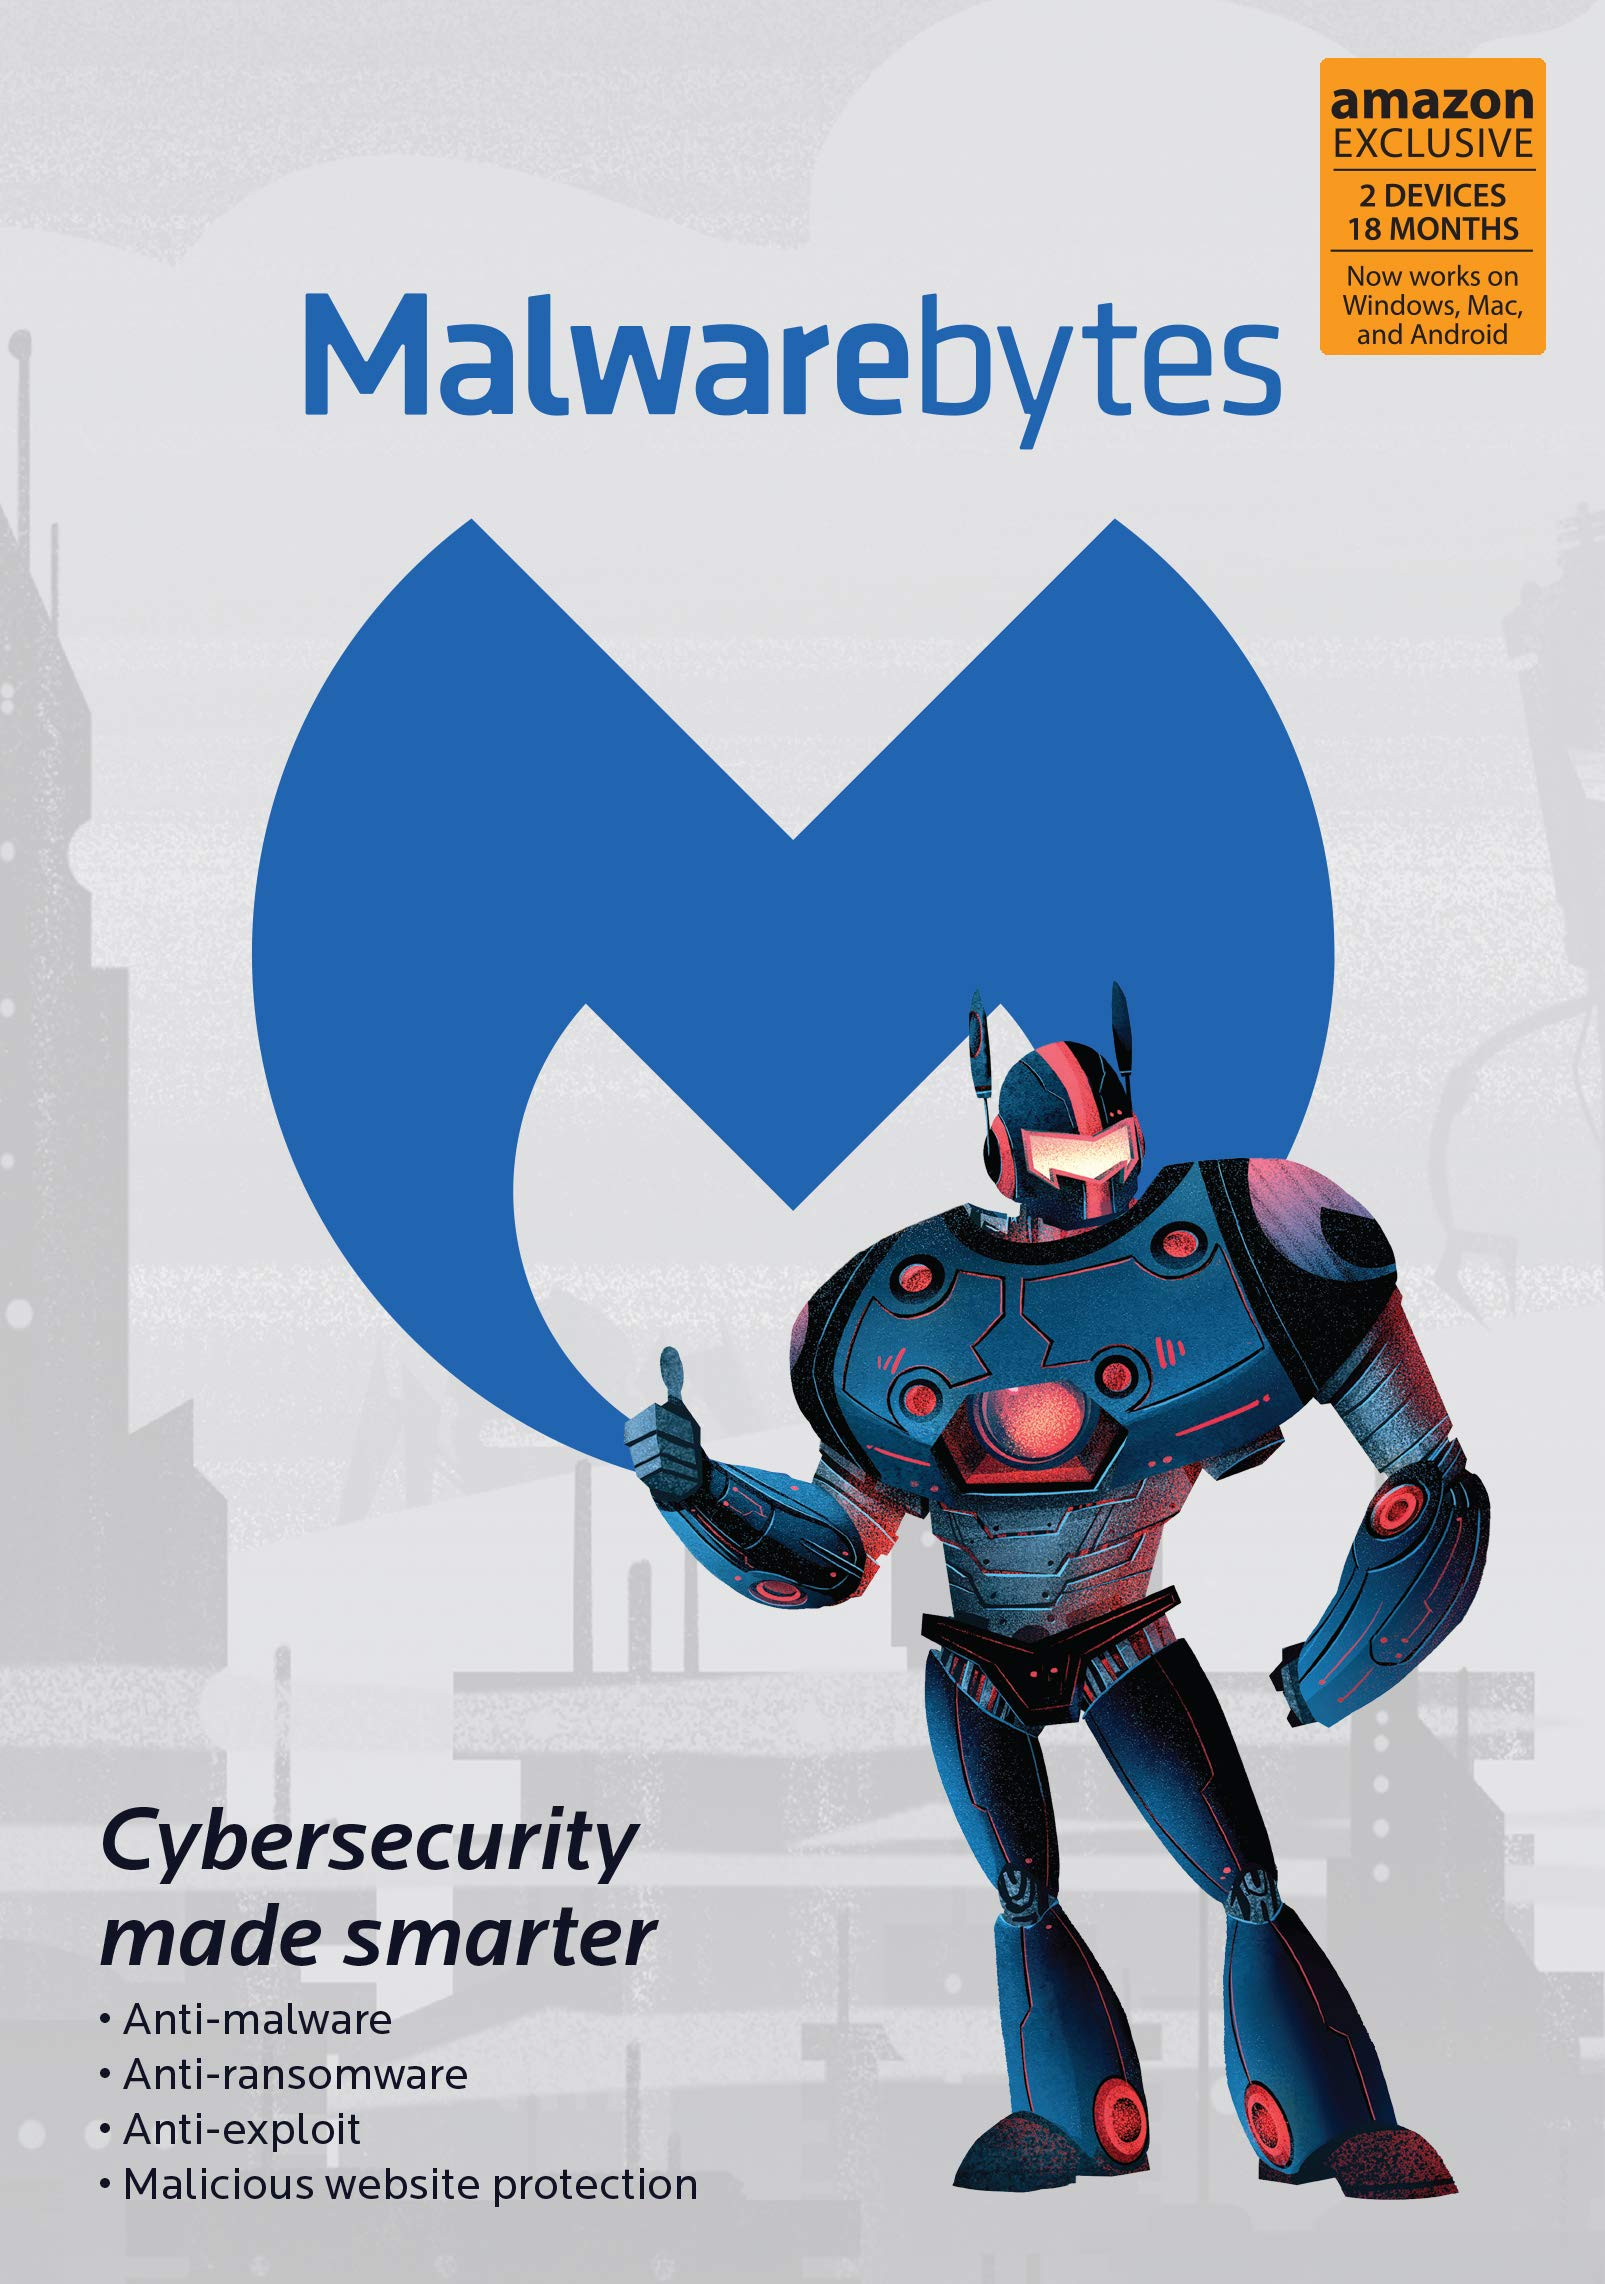 Malwarebytes | Amazon Exclusive | 18 Months, 2 Devices (PC, Mac, Android) by Malwarebytes